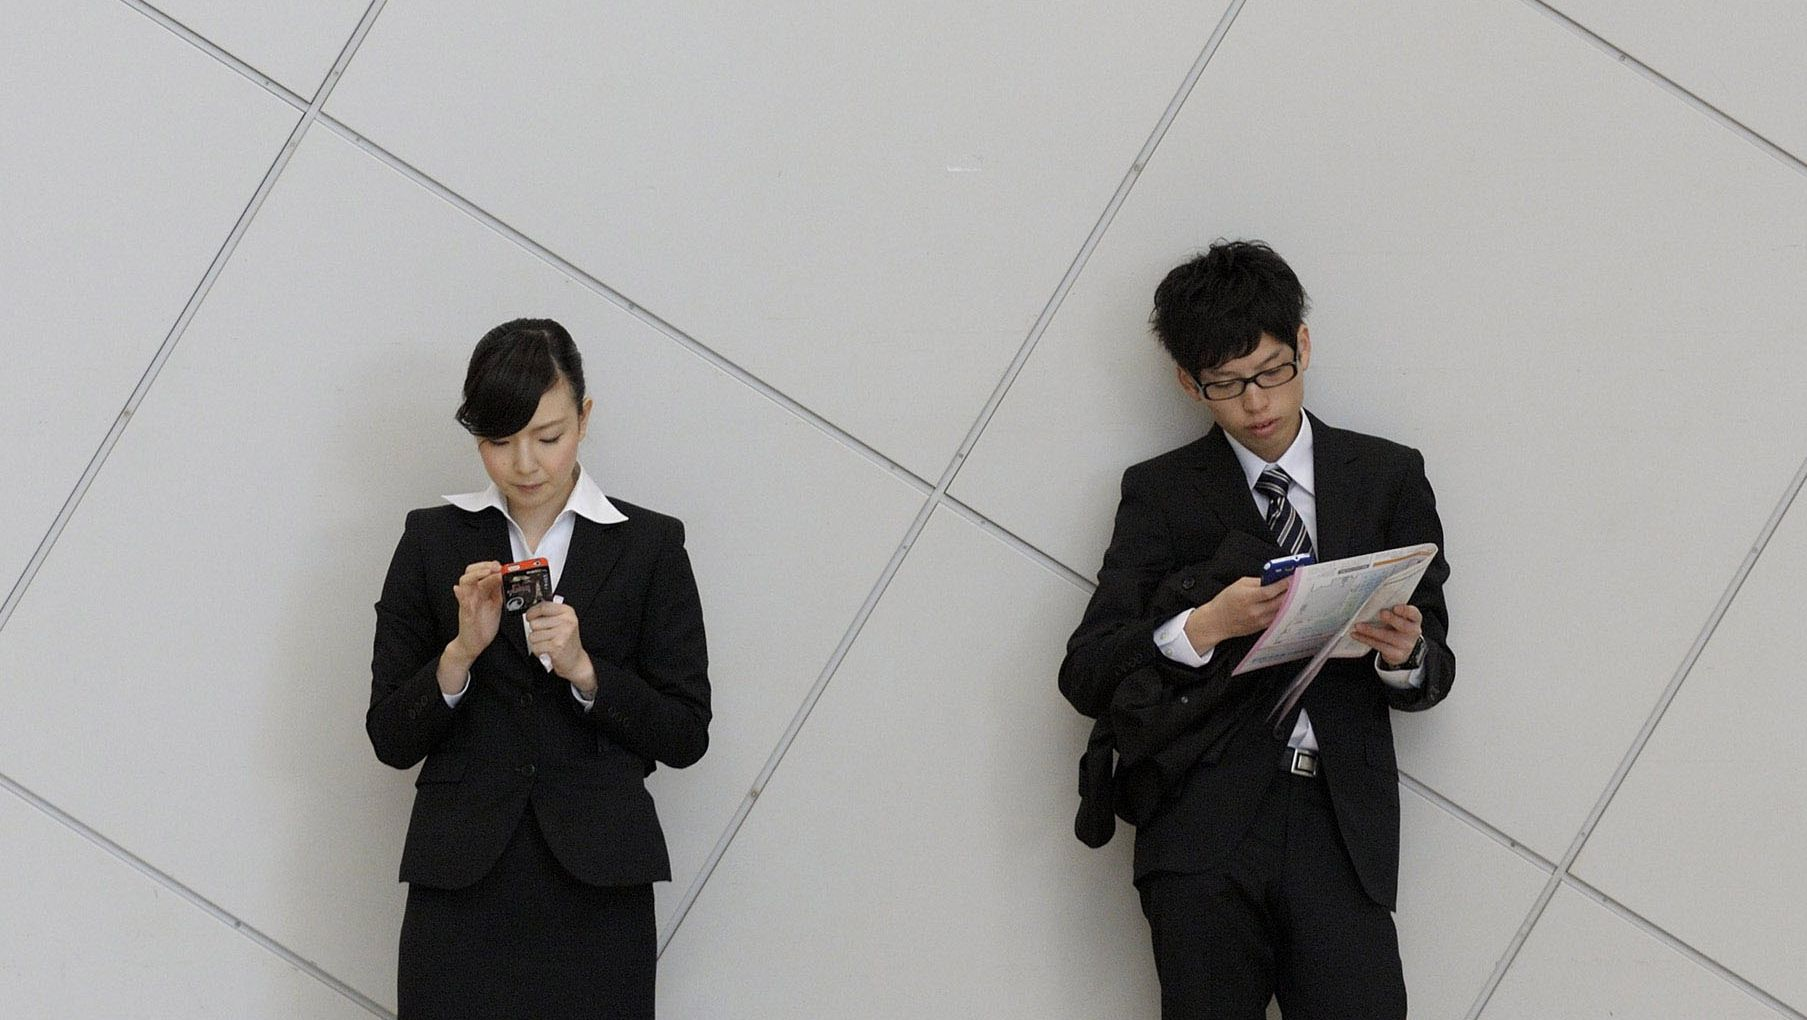 In touch: University students use smartphones at a job fair in Tokyo in December. | BLOOMBERG